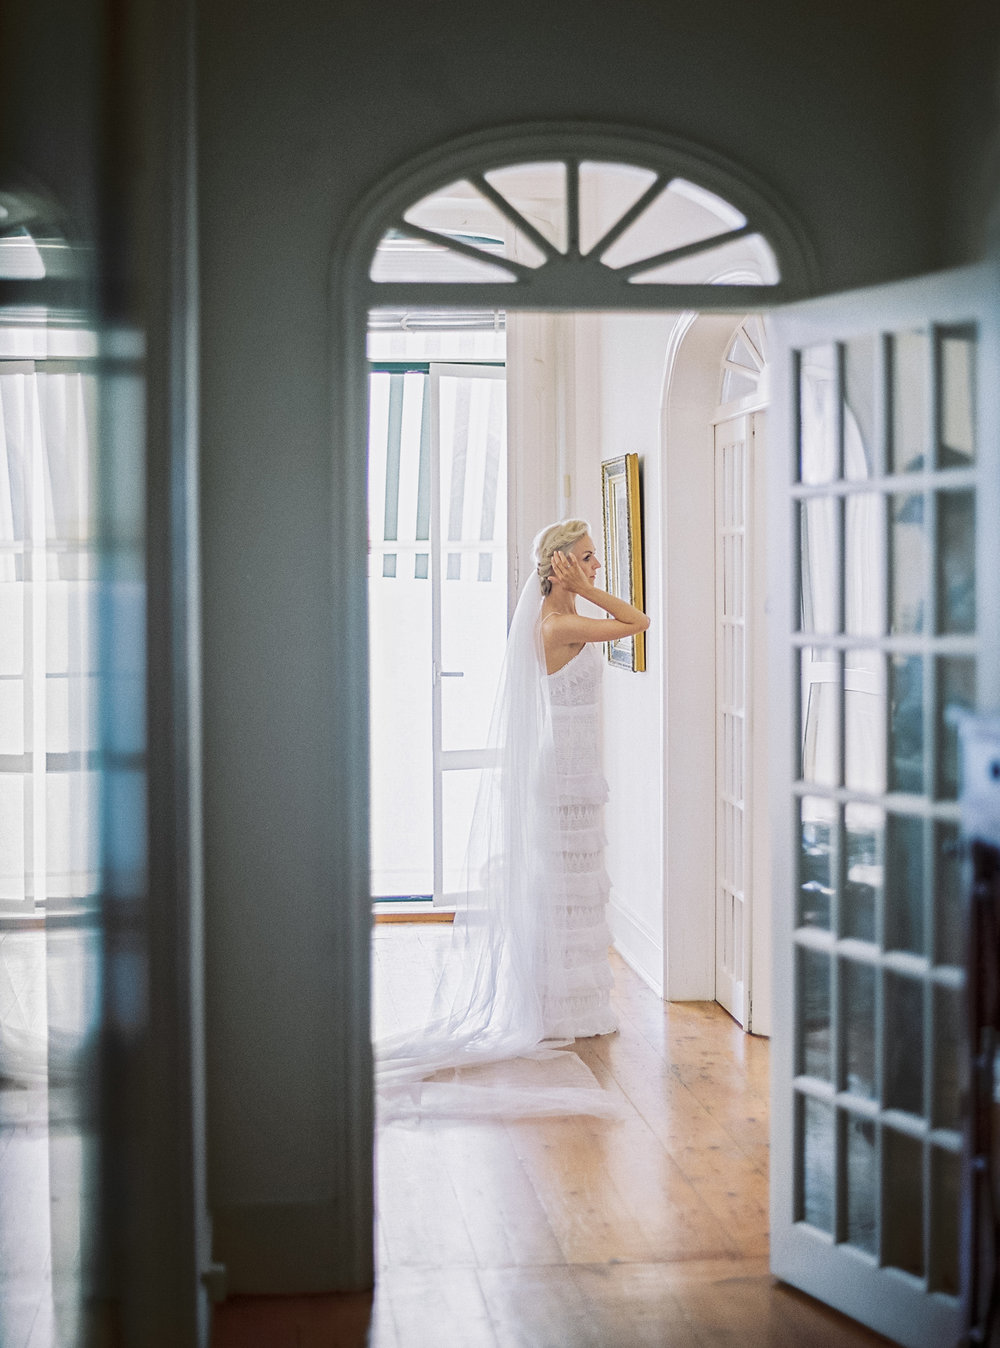 Nastia_Vesna_Photography_Wedding_Portugal_7.jpg